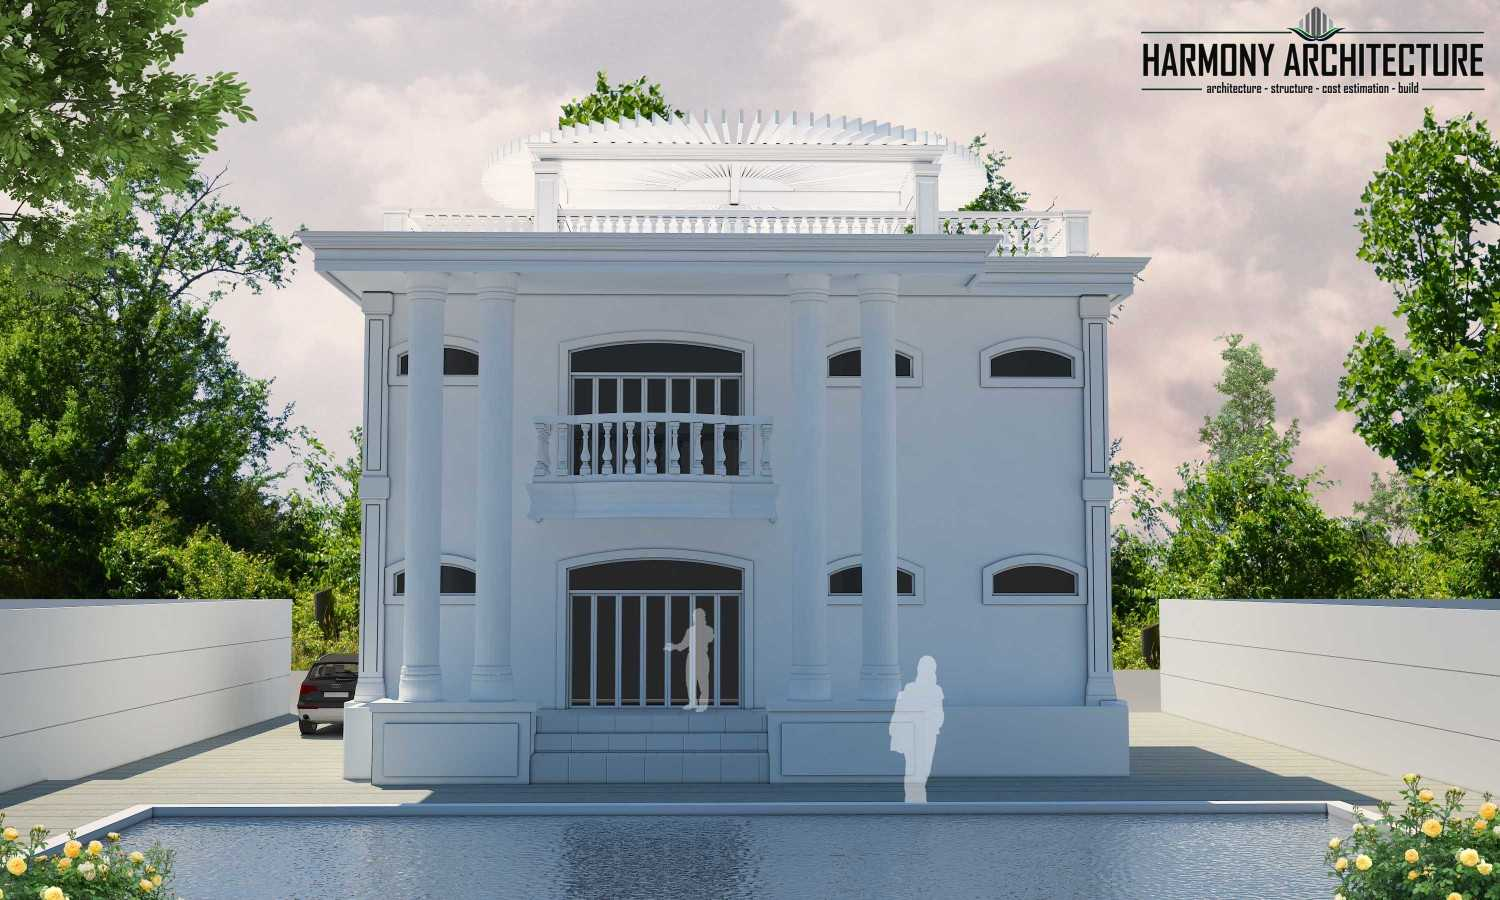 Harmony Architecture White House Of Timor Timor-Leste Timor-Leste Harmony-Architecture-White-House-Of-Timor Classic 52518